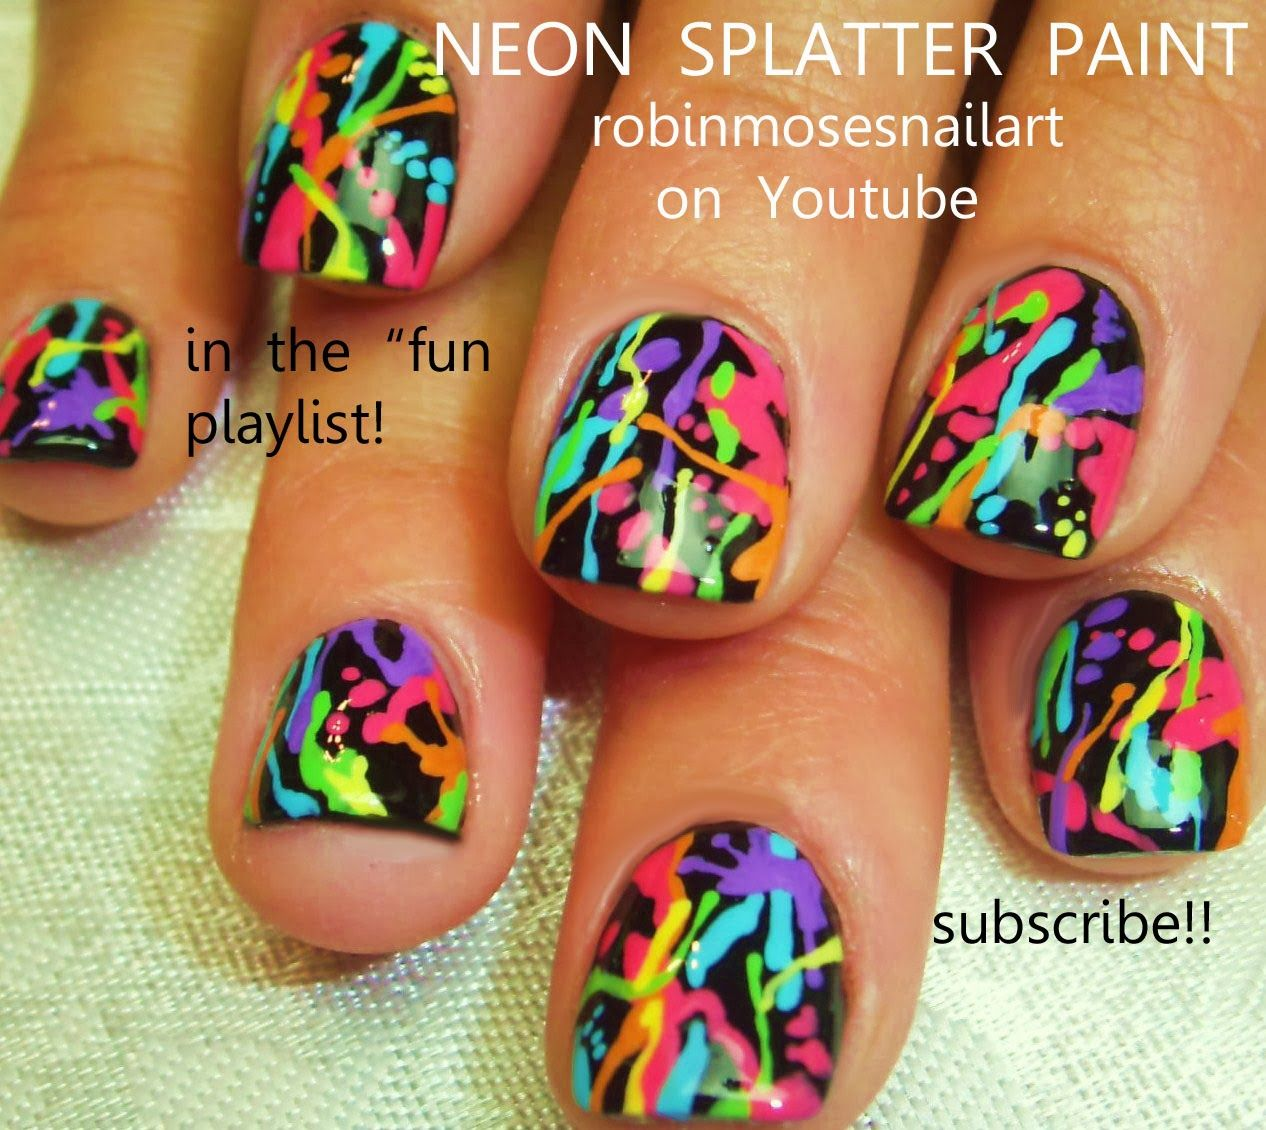 Nail Art Ideas Nail Art East Rochester Ny Pictures Of Nail Art